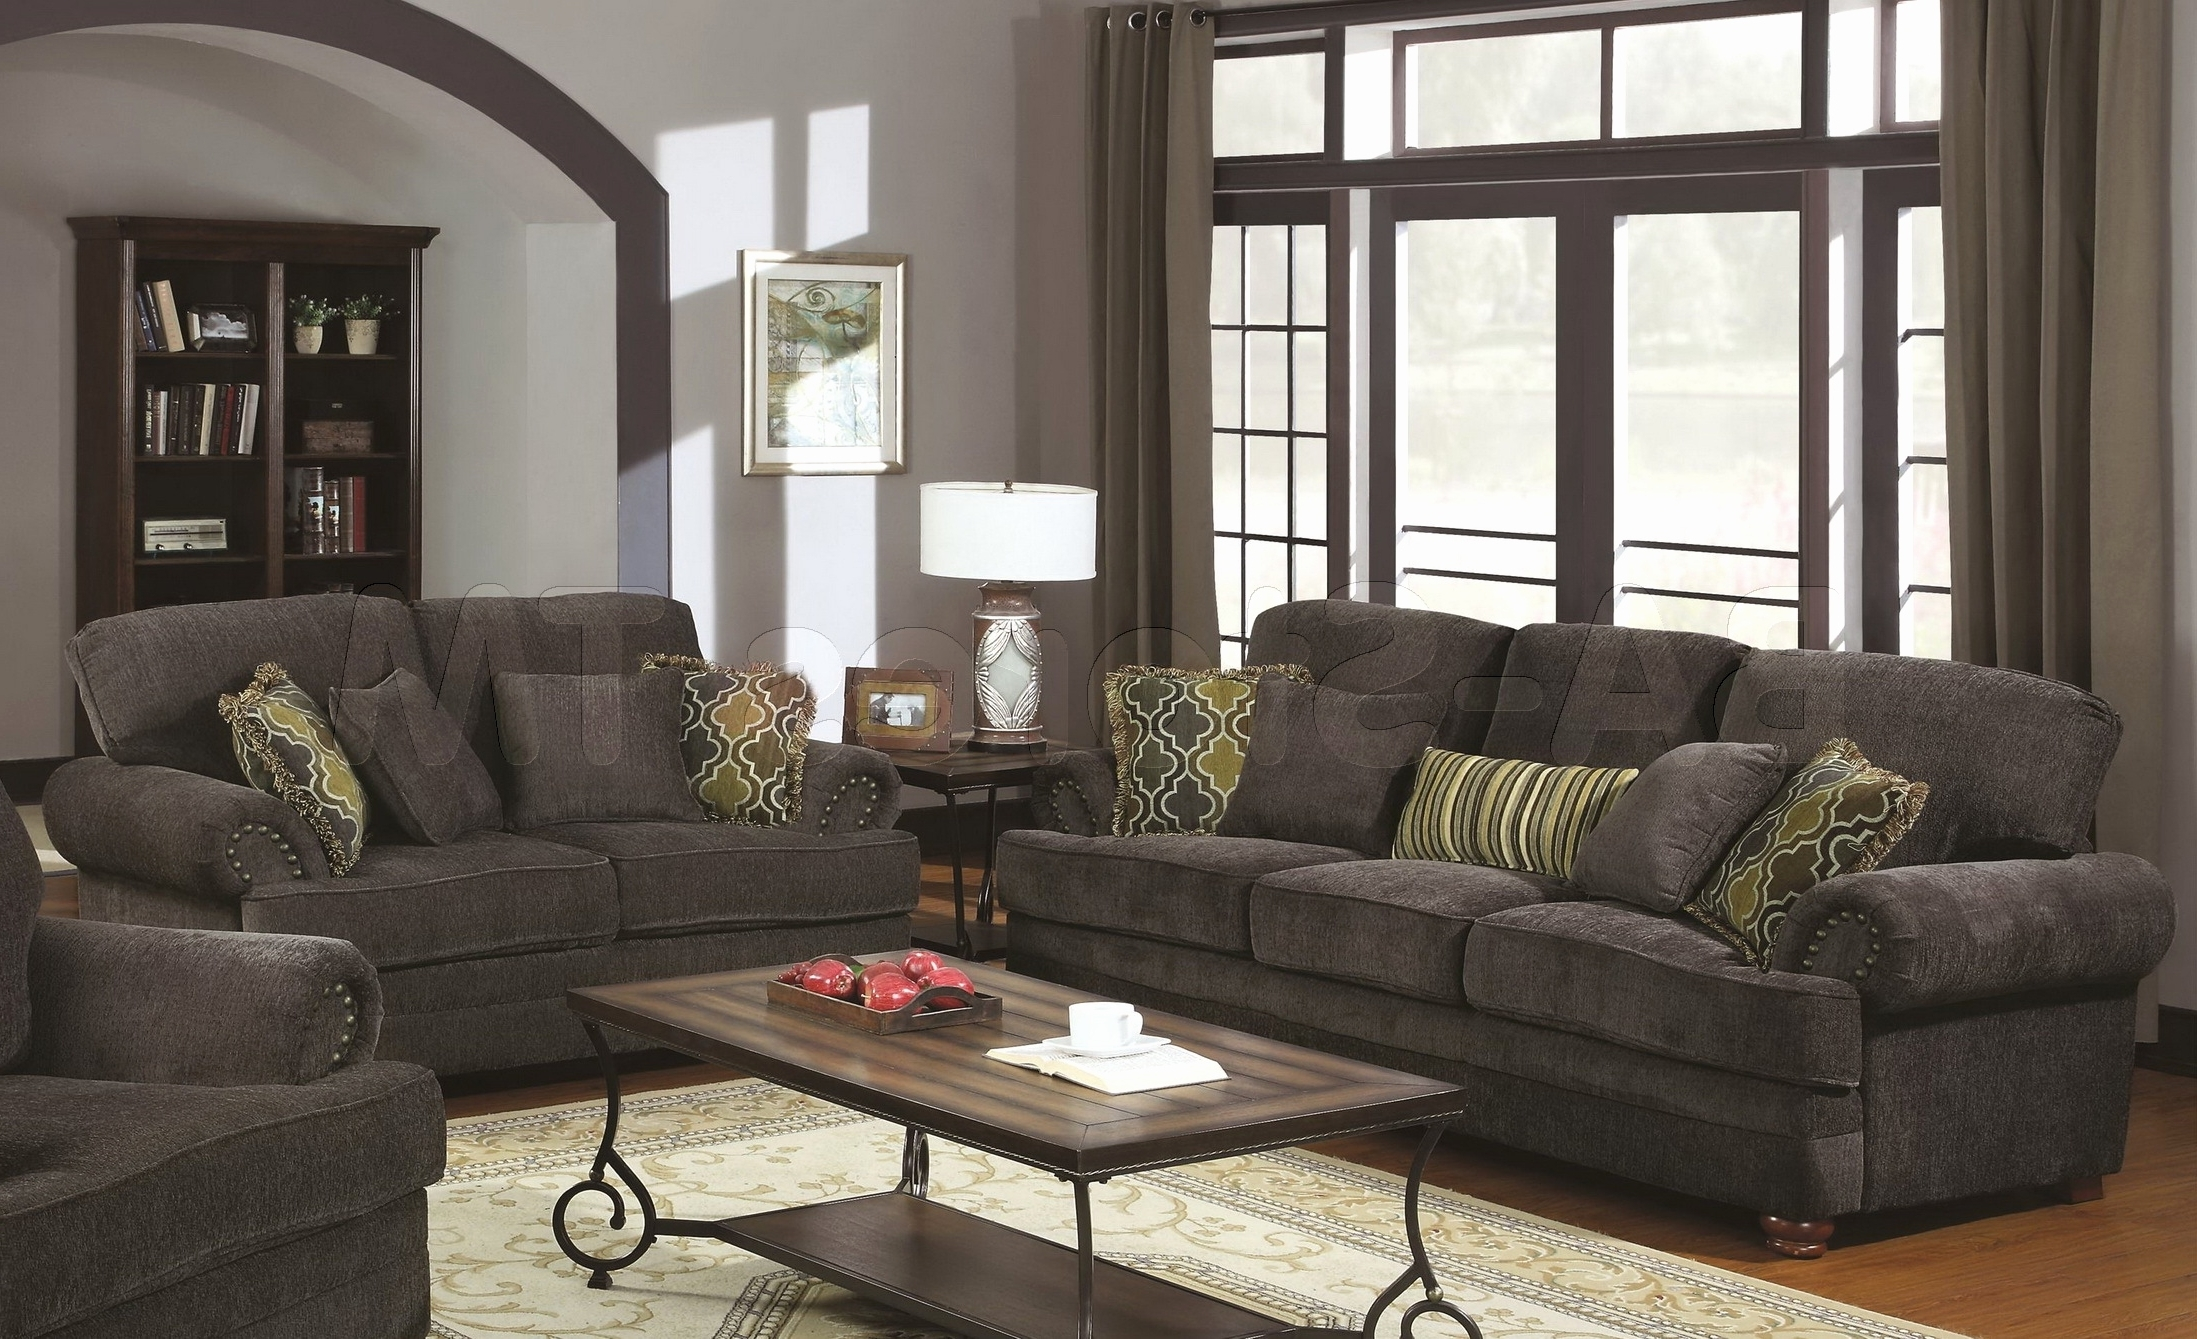 Current Fresh Overstuffed Leather Sofa 2018 – Couches Ideas Intended For Overstuffed Sofas And Chairs (View 1 of 15)